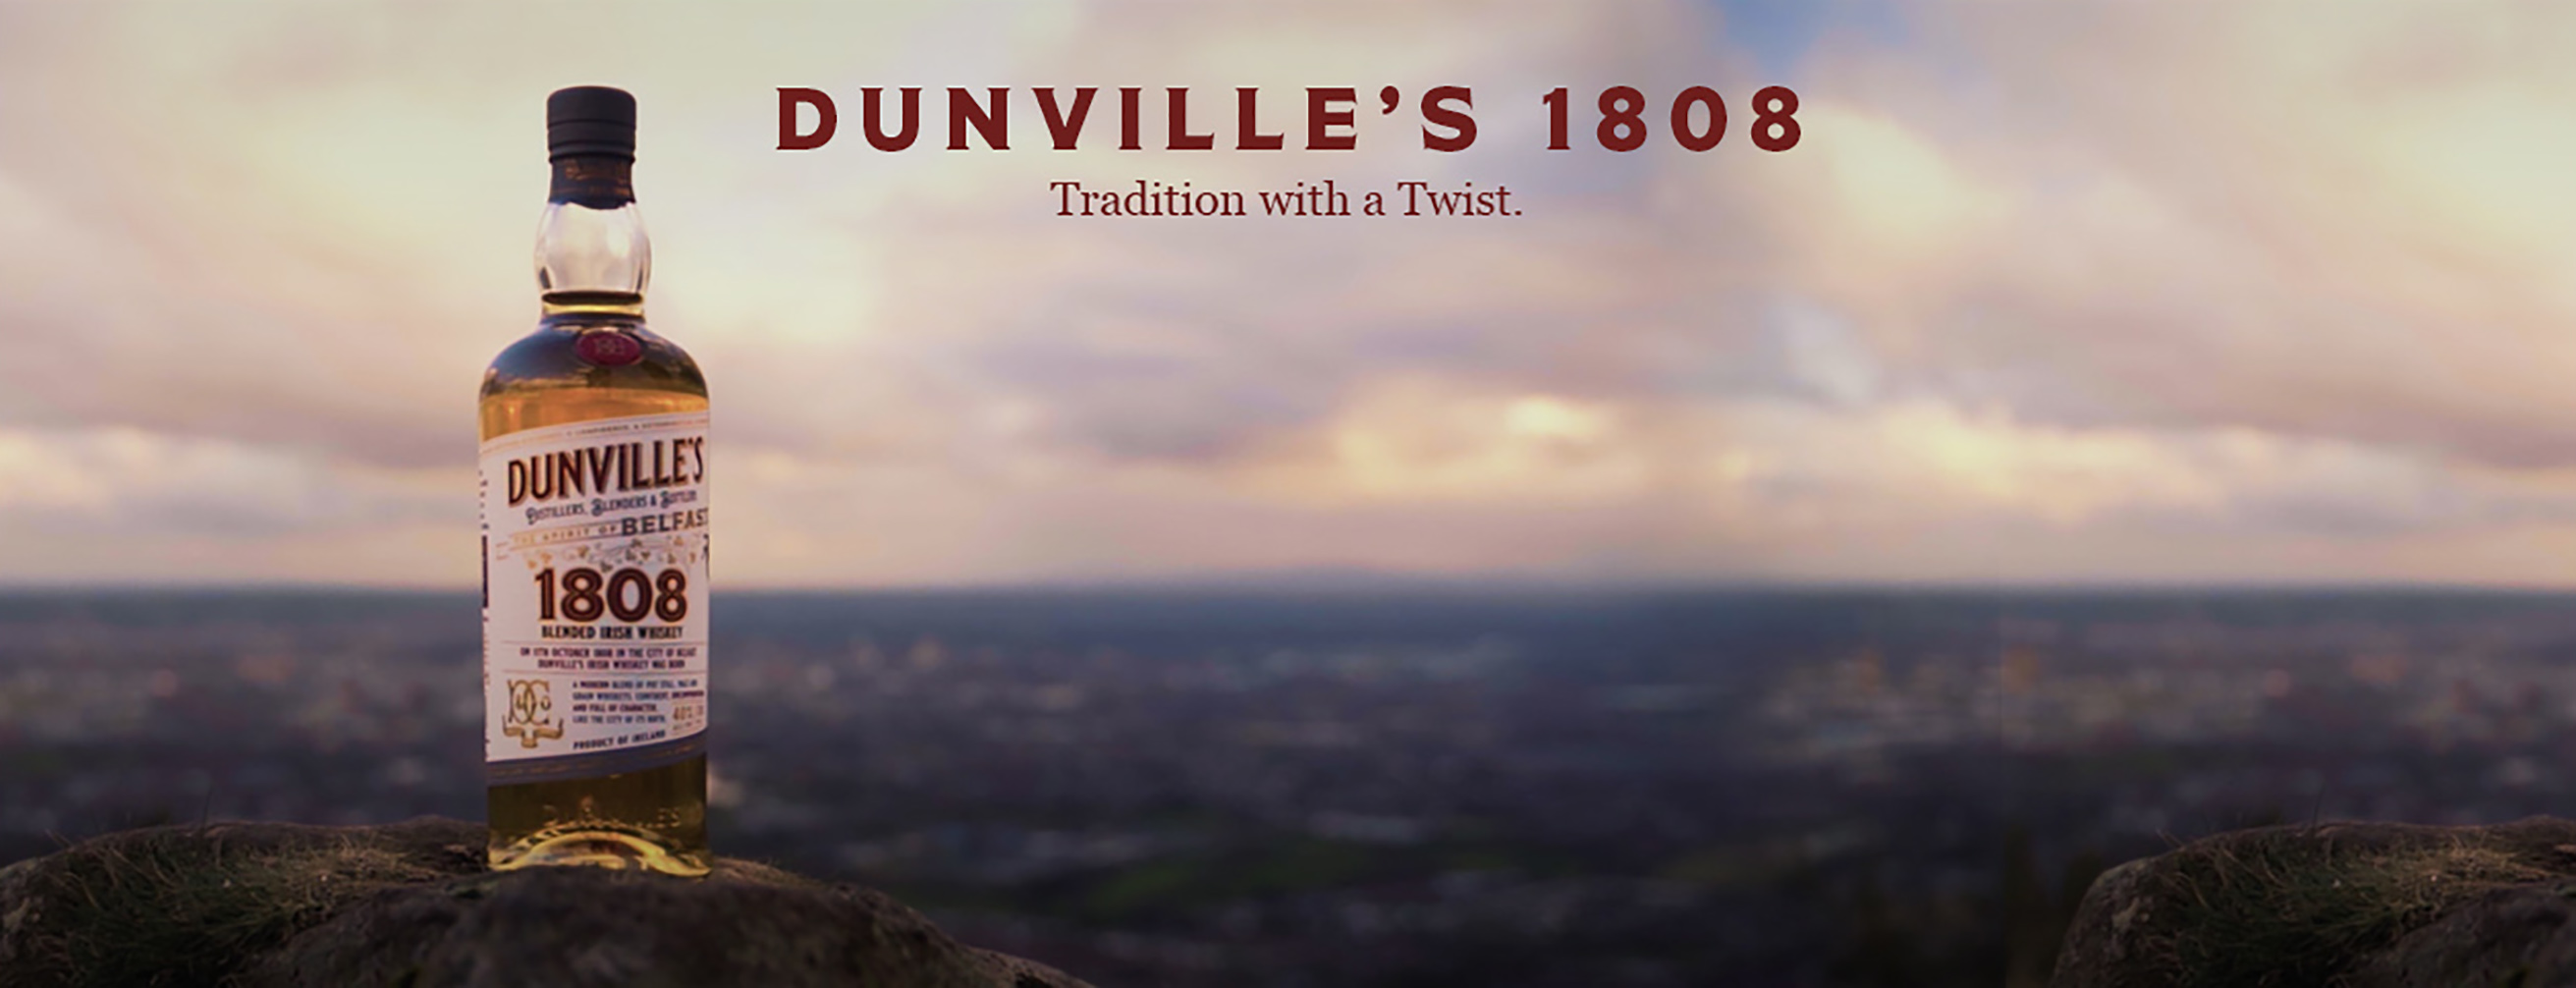 Dunville's 1808 Whiskey bottle on Cave Hill Belfast